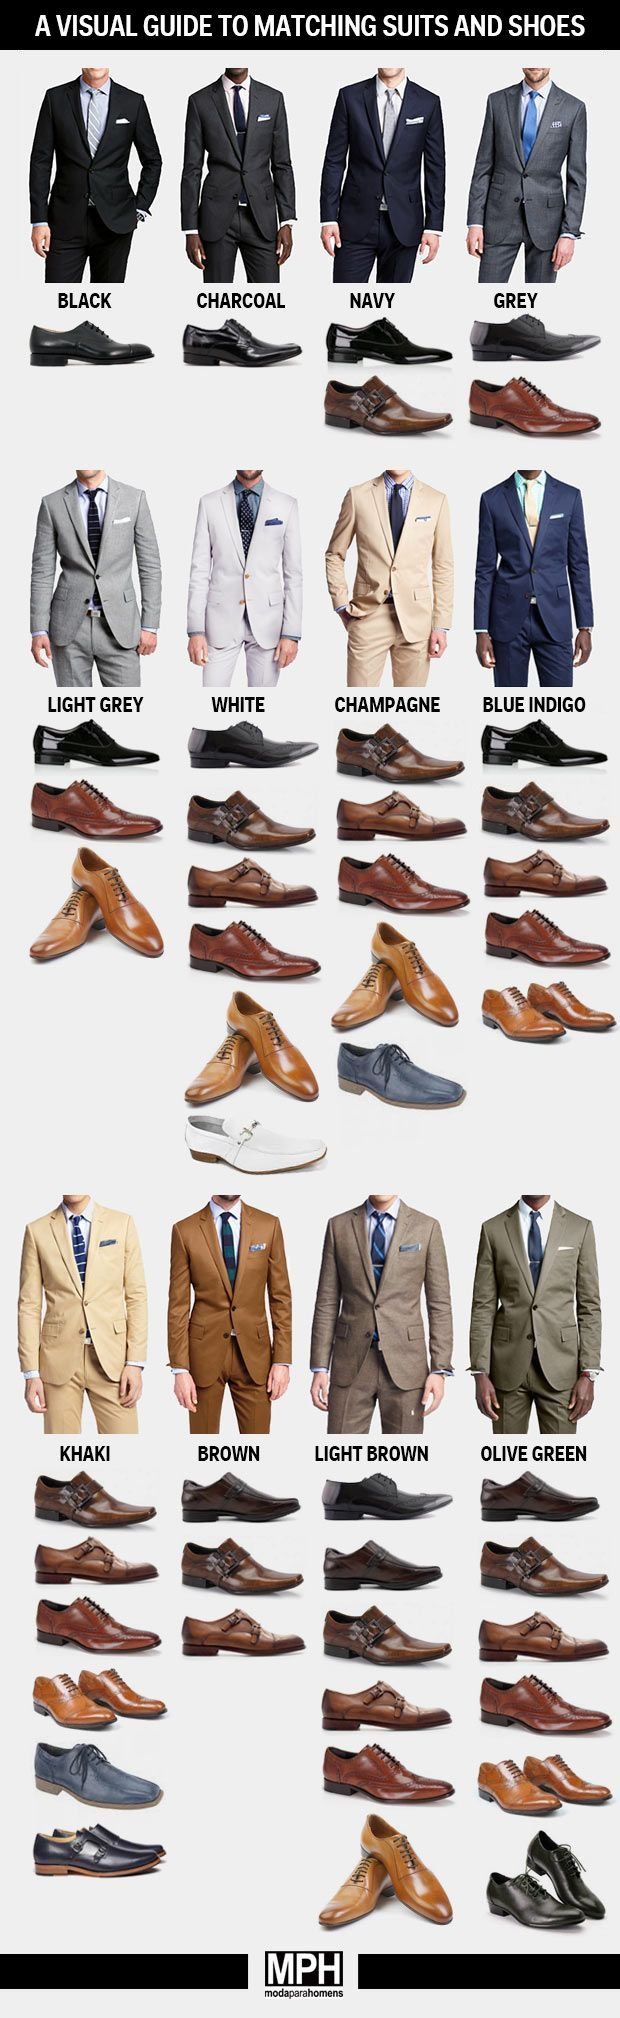 Don't fret about trying to figure out how to match your shoes to your suit, this visual guide has you covered! #DTTSWedding #GlamTimeTuesday